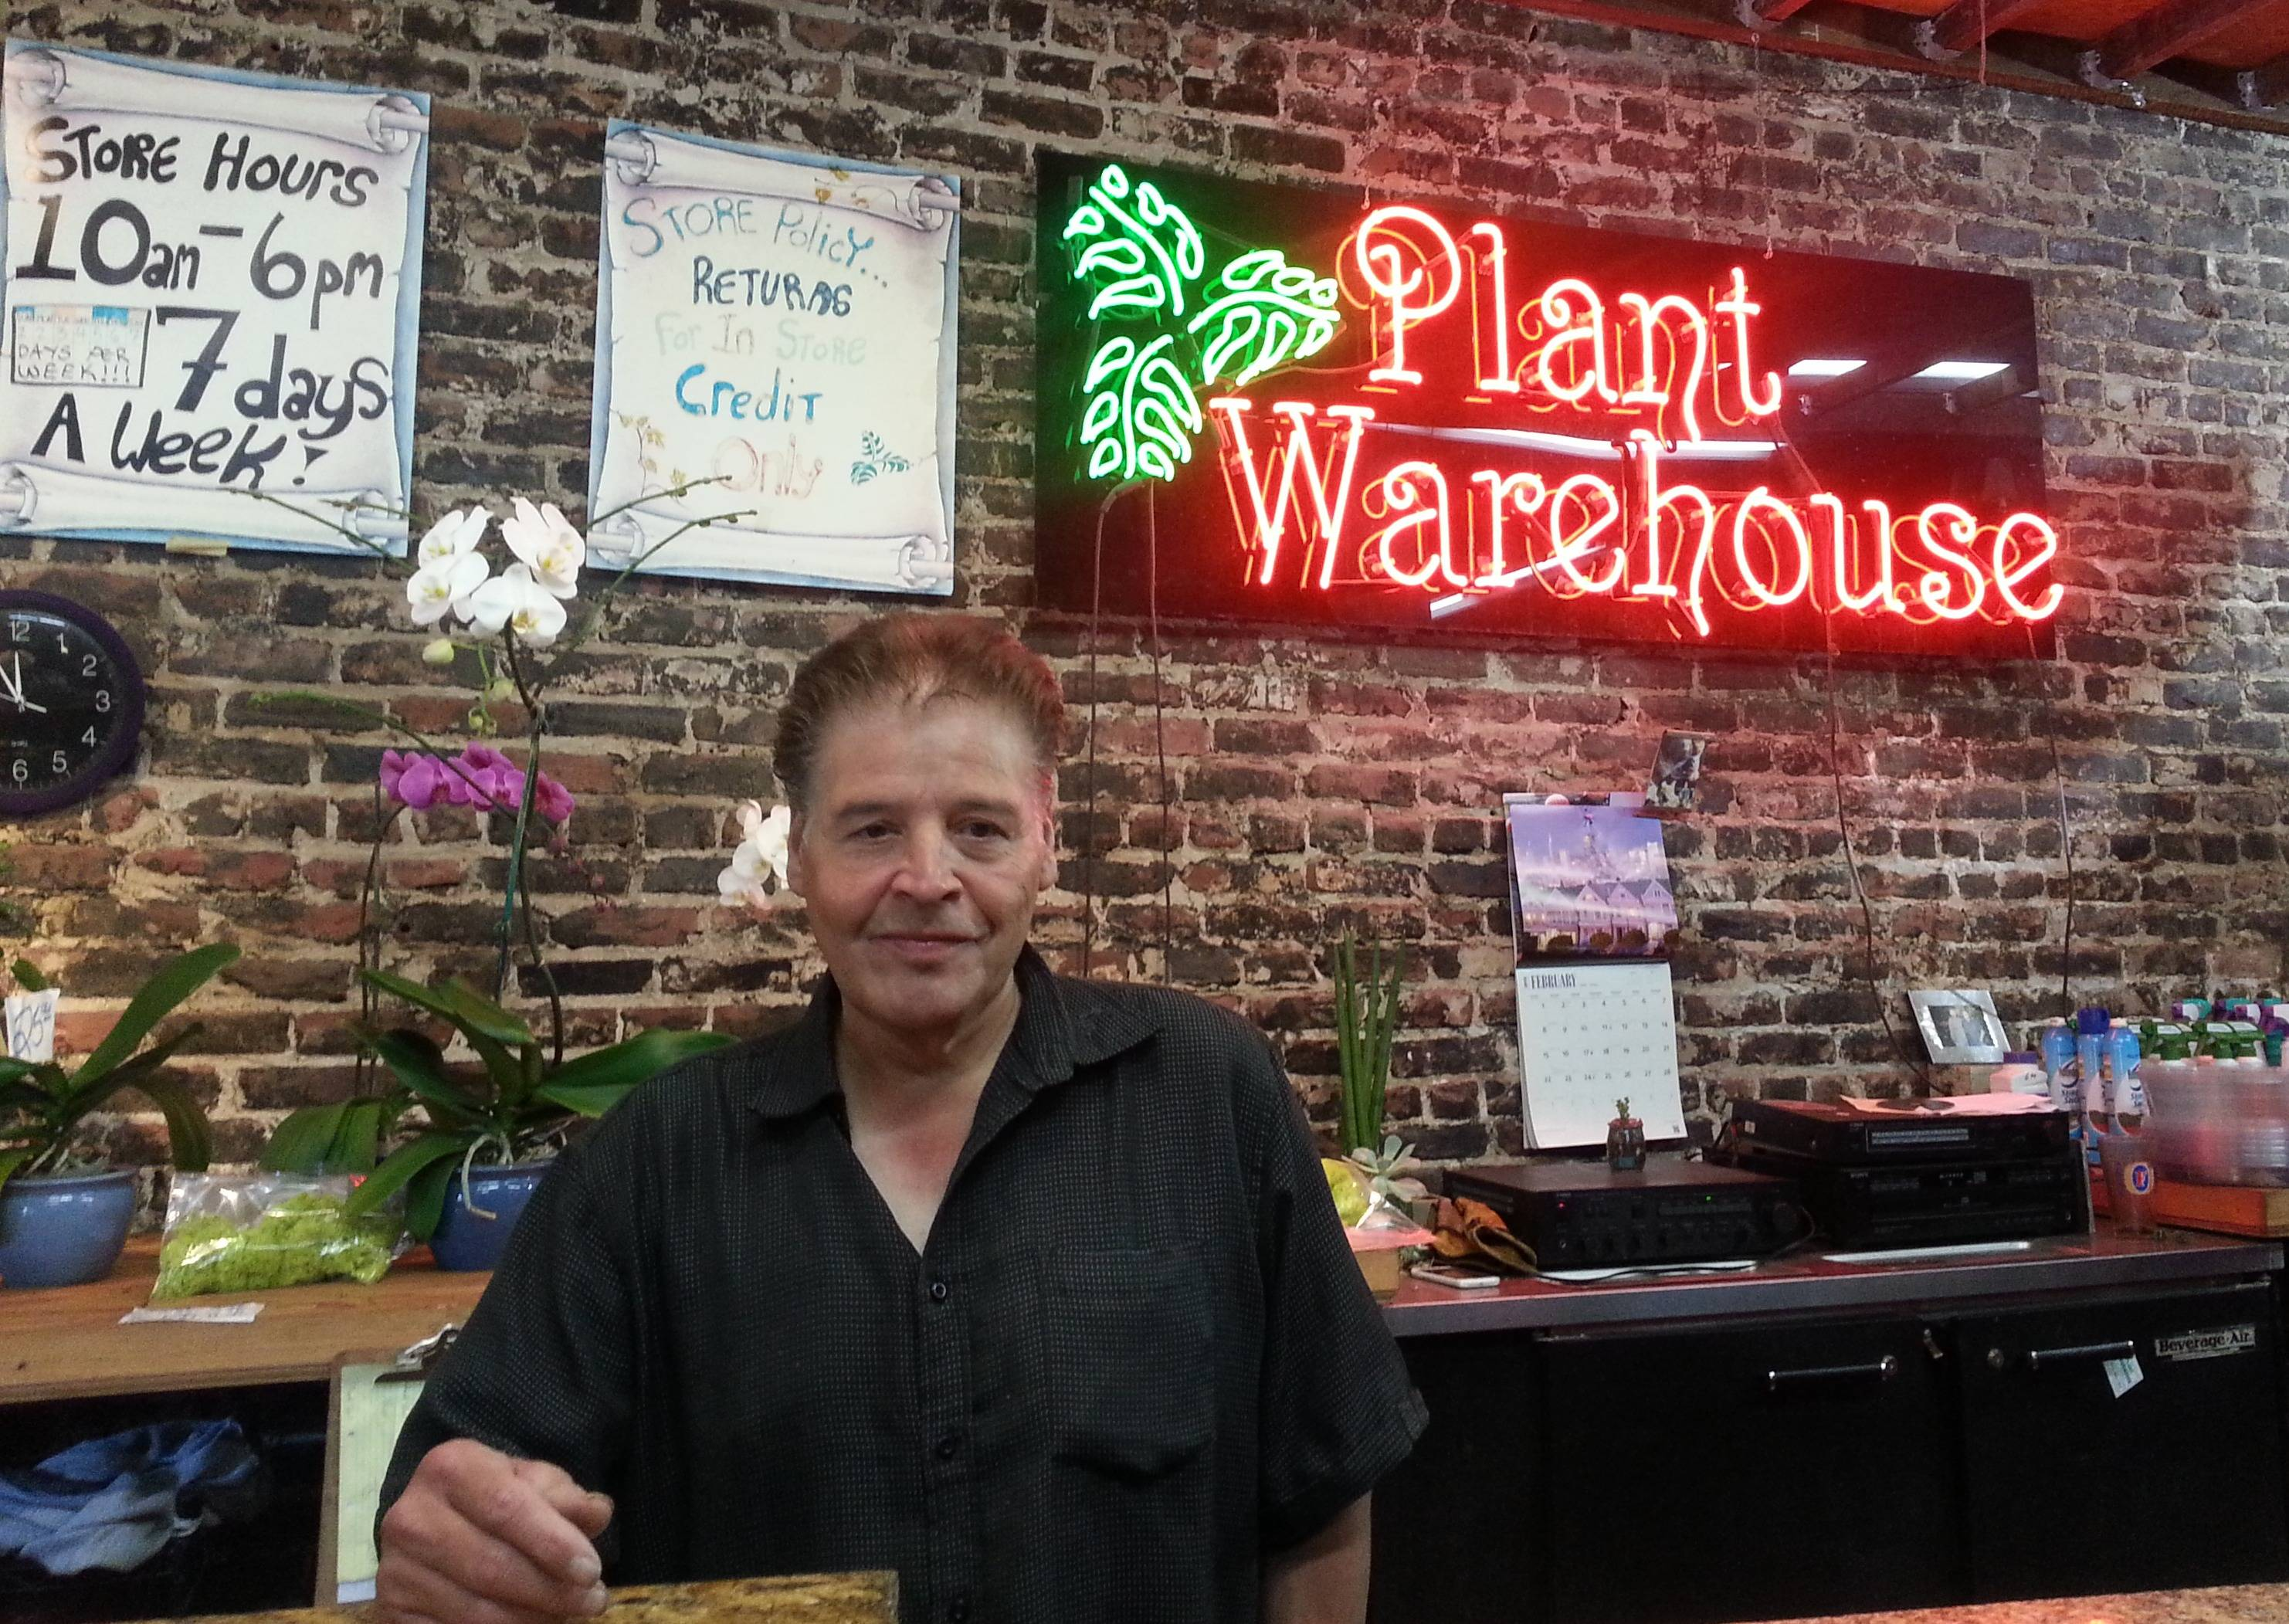 Gil Gonzales, owner, Plant Warehouse